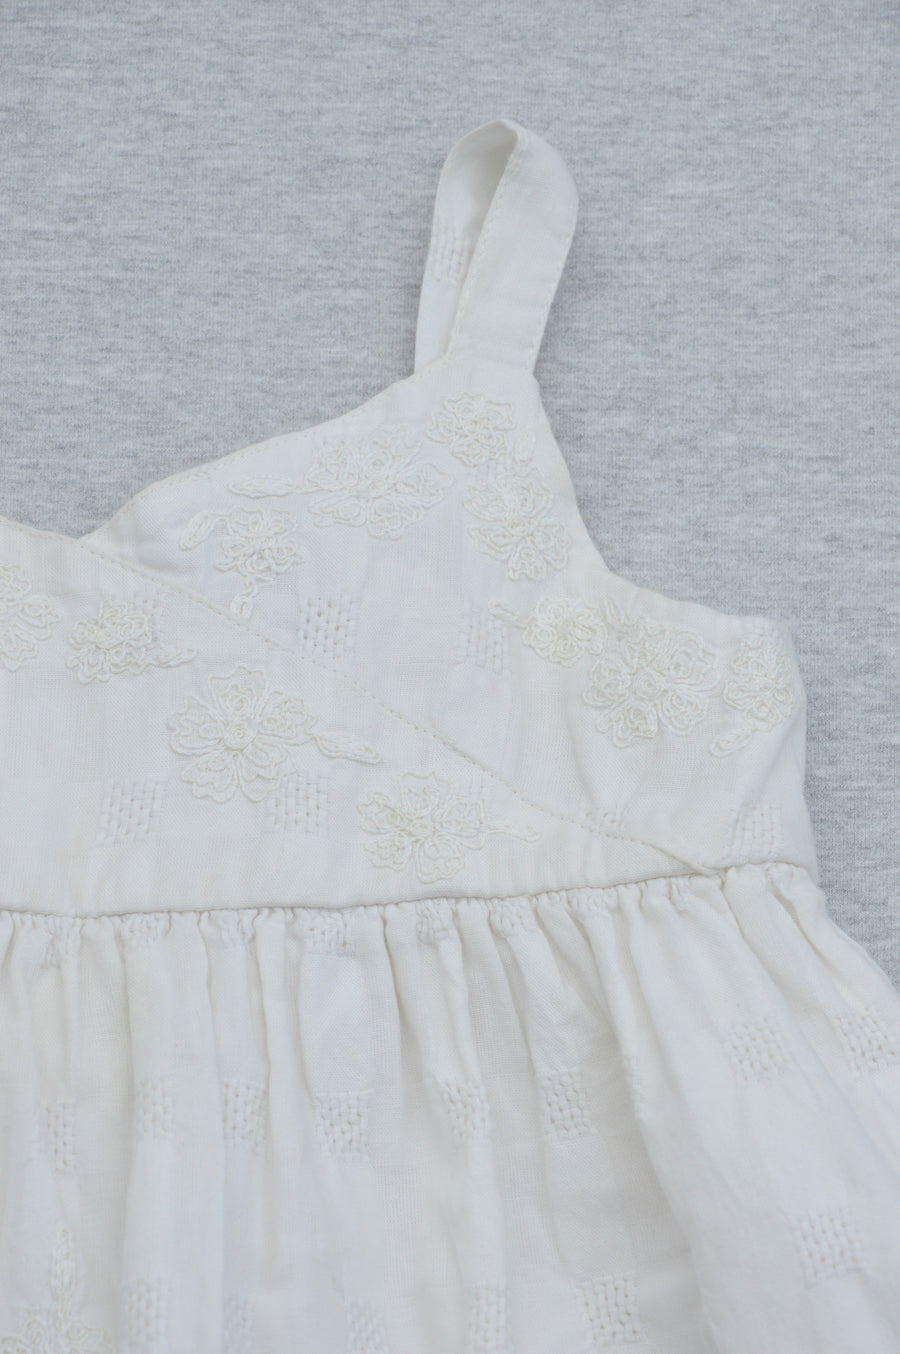 Marks & Spencer's Mini Boutique cream embroidered top, size 2-3